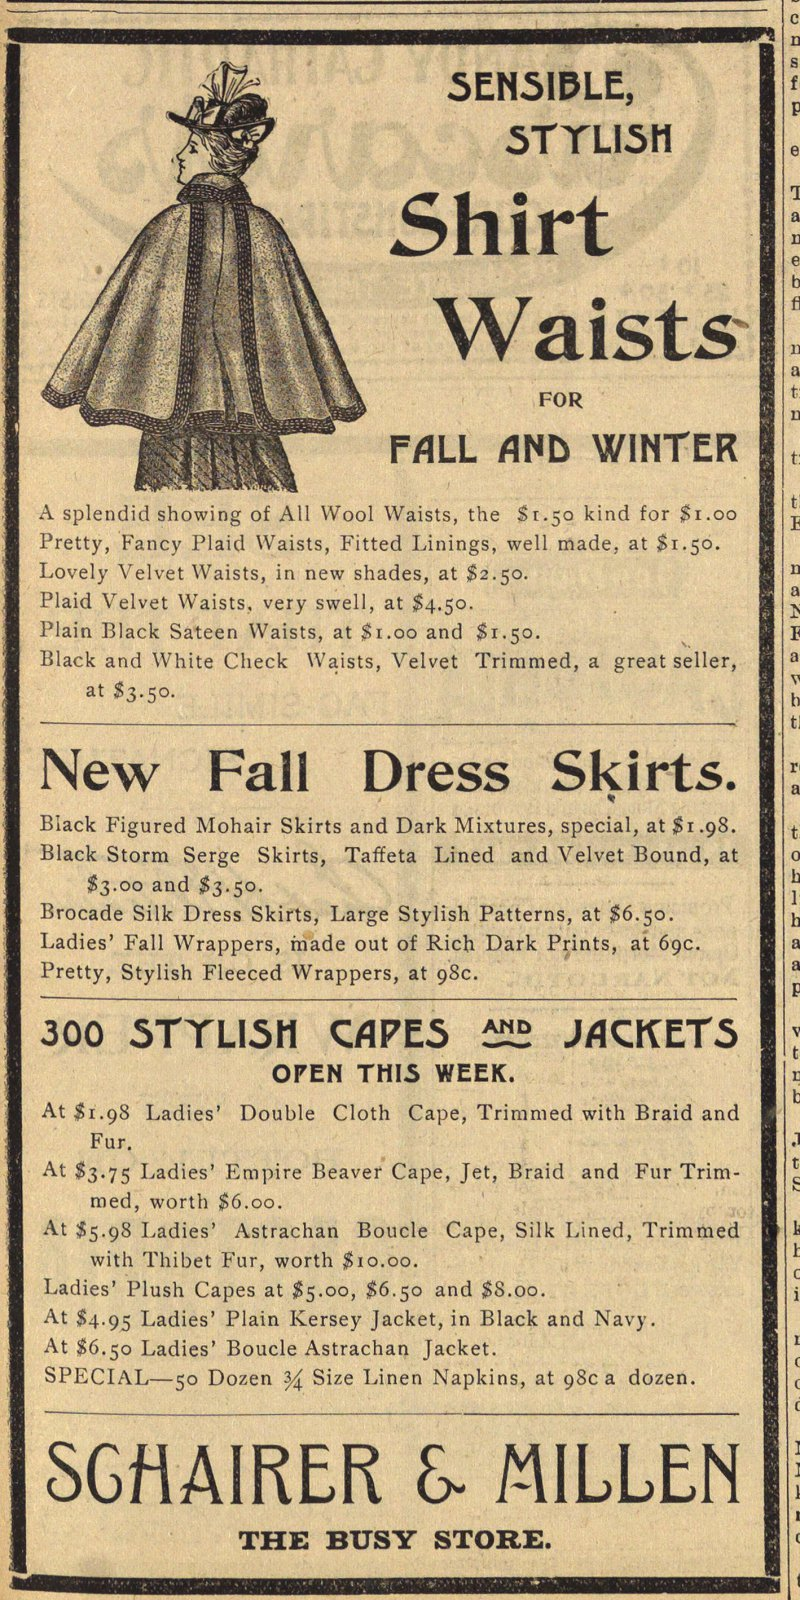 New Fall Dress Skirts image